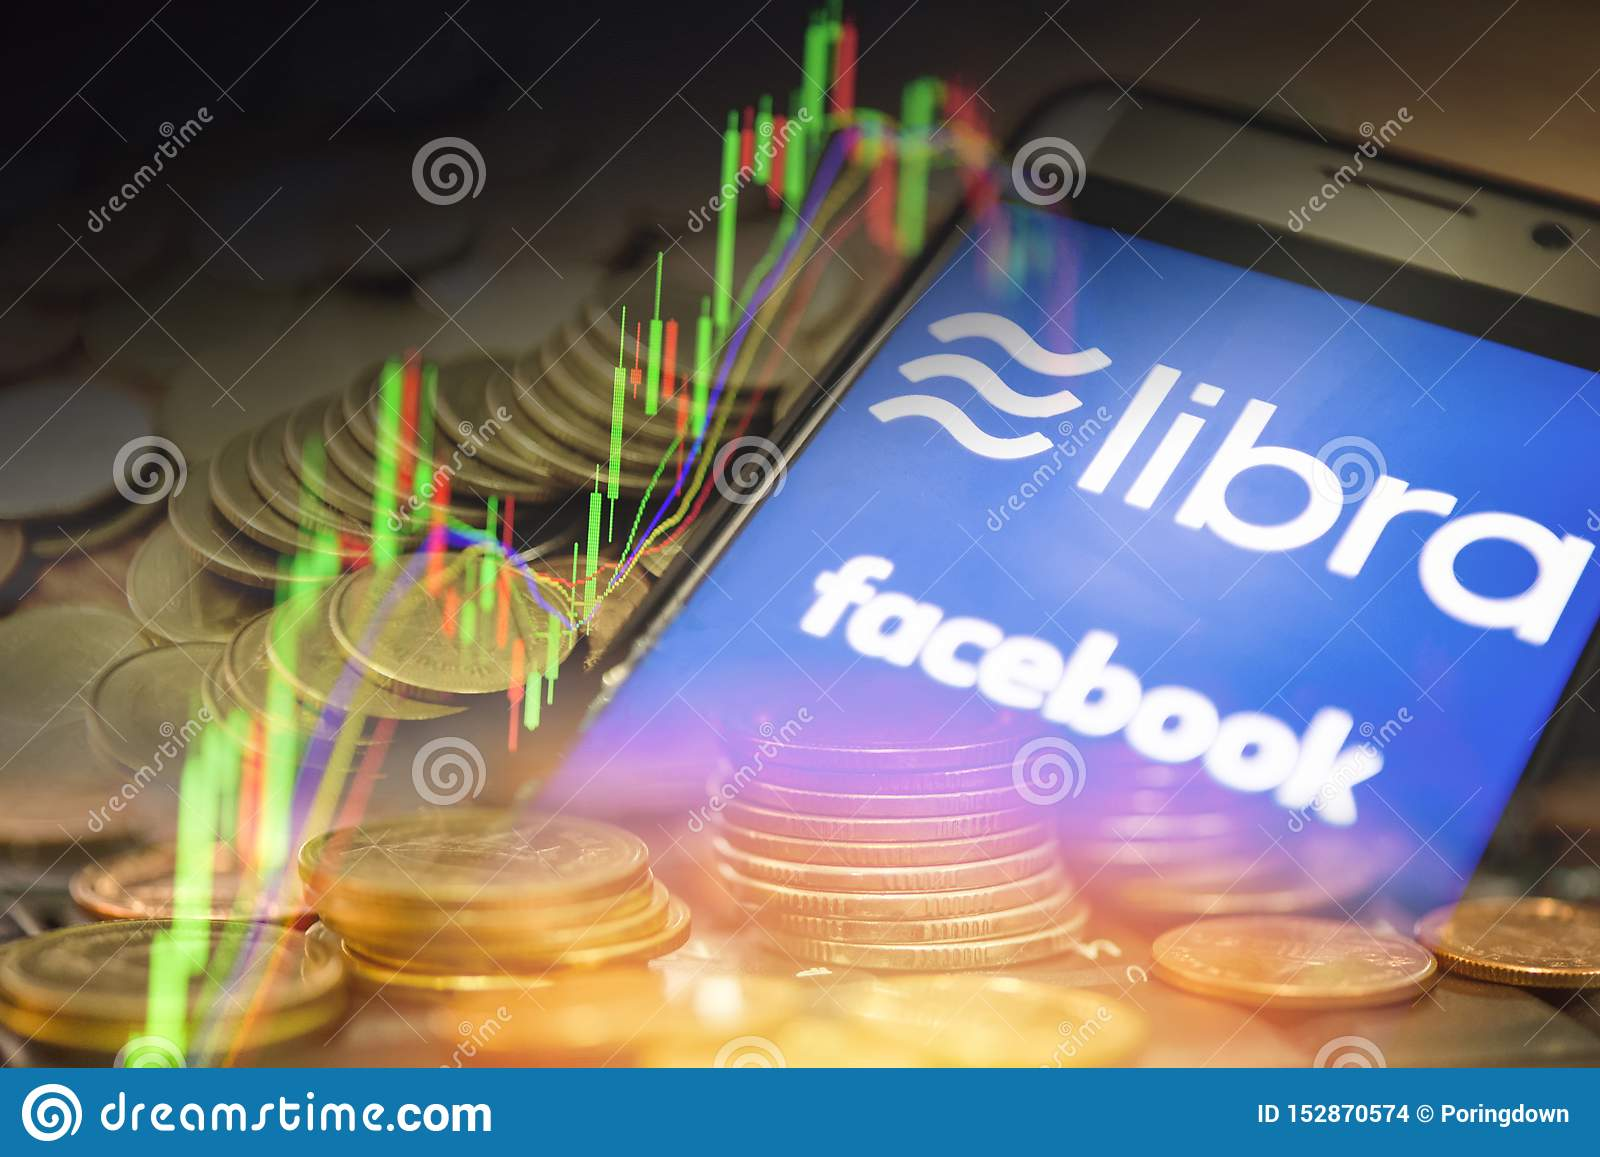 how to buy stock in libra coin